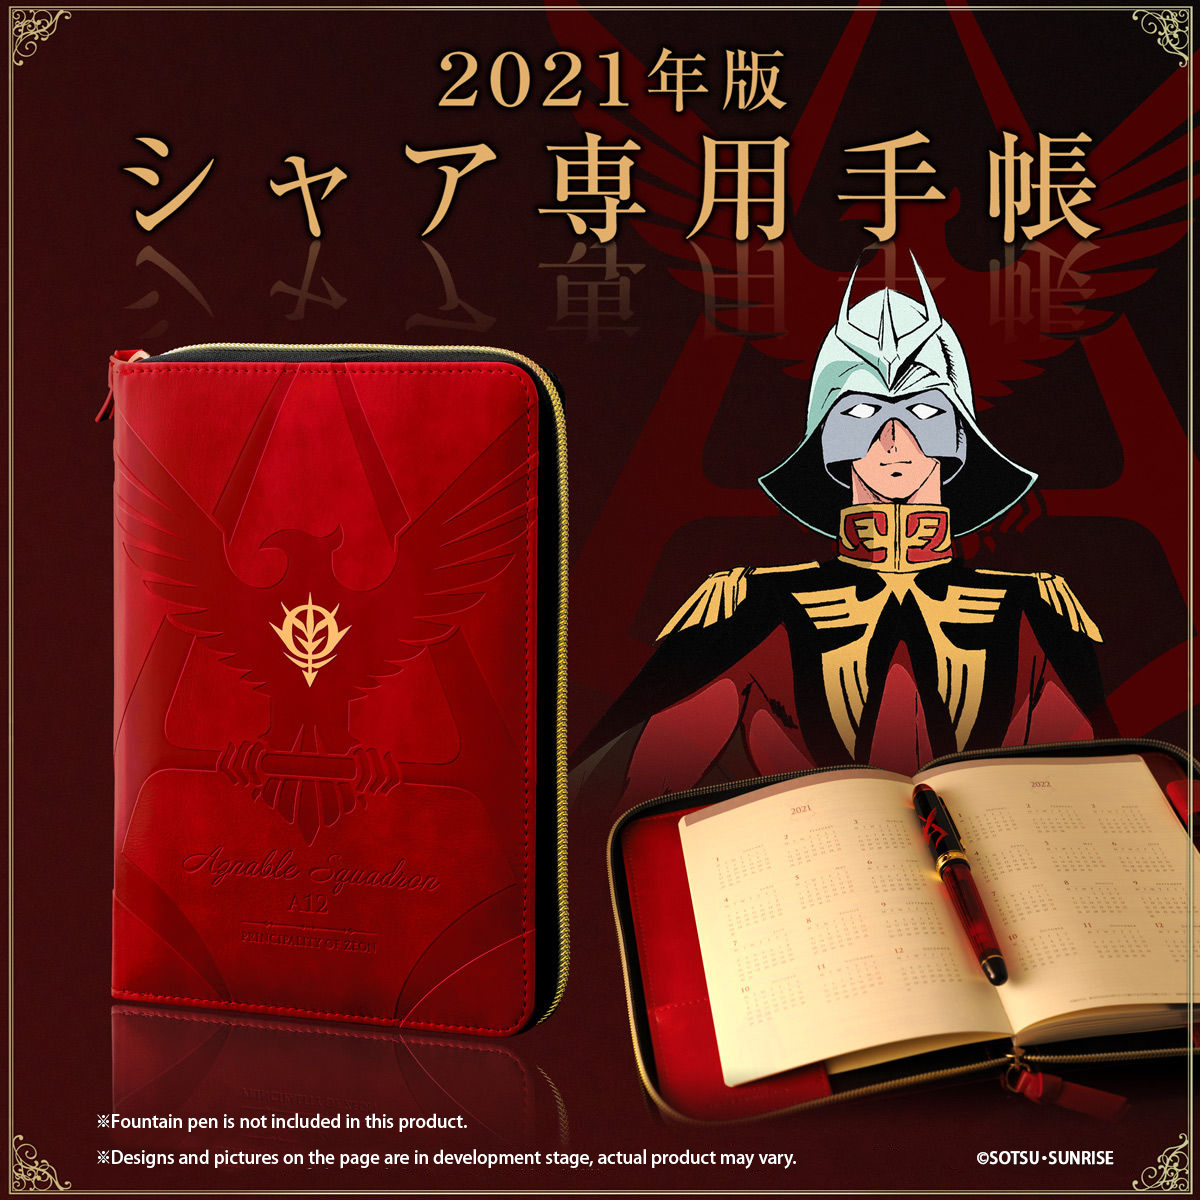 MOBILE SUIT GUNDAM CHAR'S SCHEDULE BOOK 2021